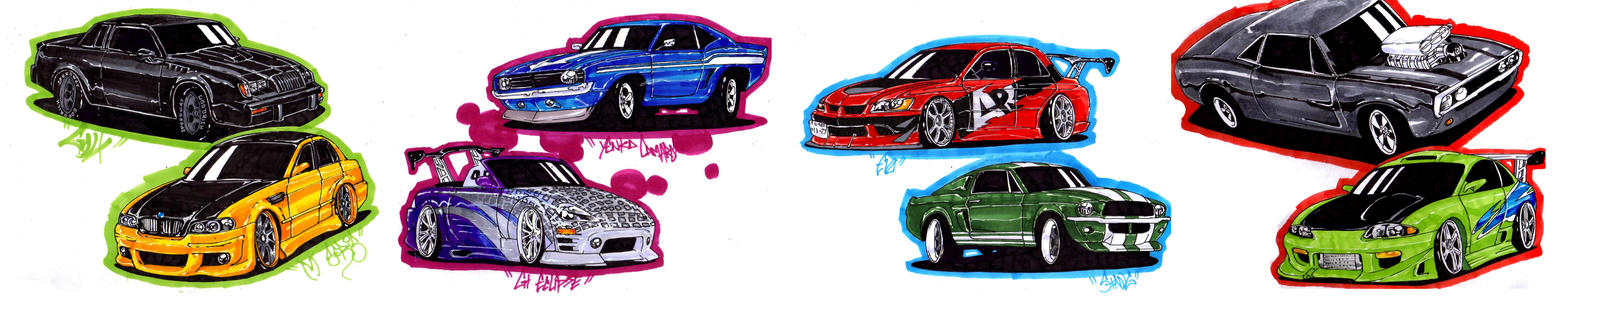 Czeshop Images How To Draw Fast And Furious 6 Cars